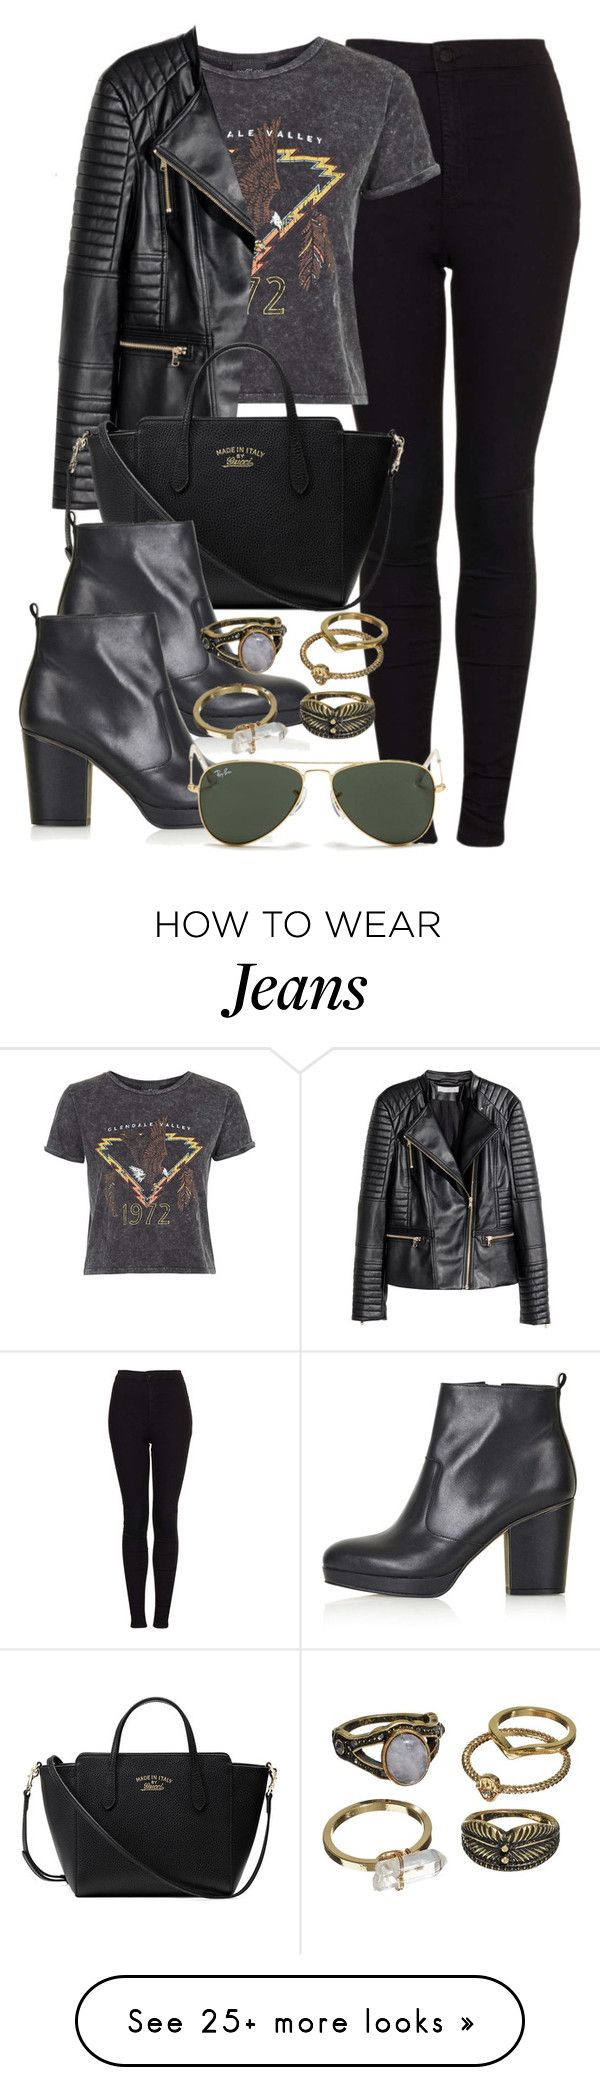 """Style #9765"" by vany-alvarado on Polyvore featuring Topshop, H&M, Gucci, Ray-Ban, Mudd, women's clothing, women, female, woman and misses"